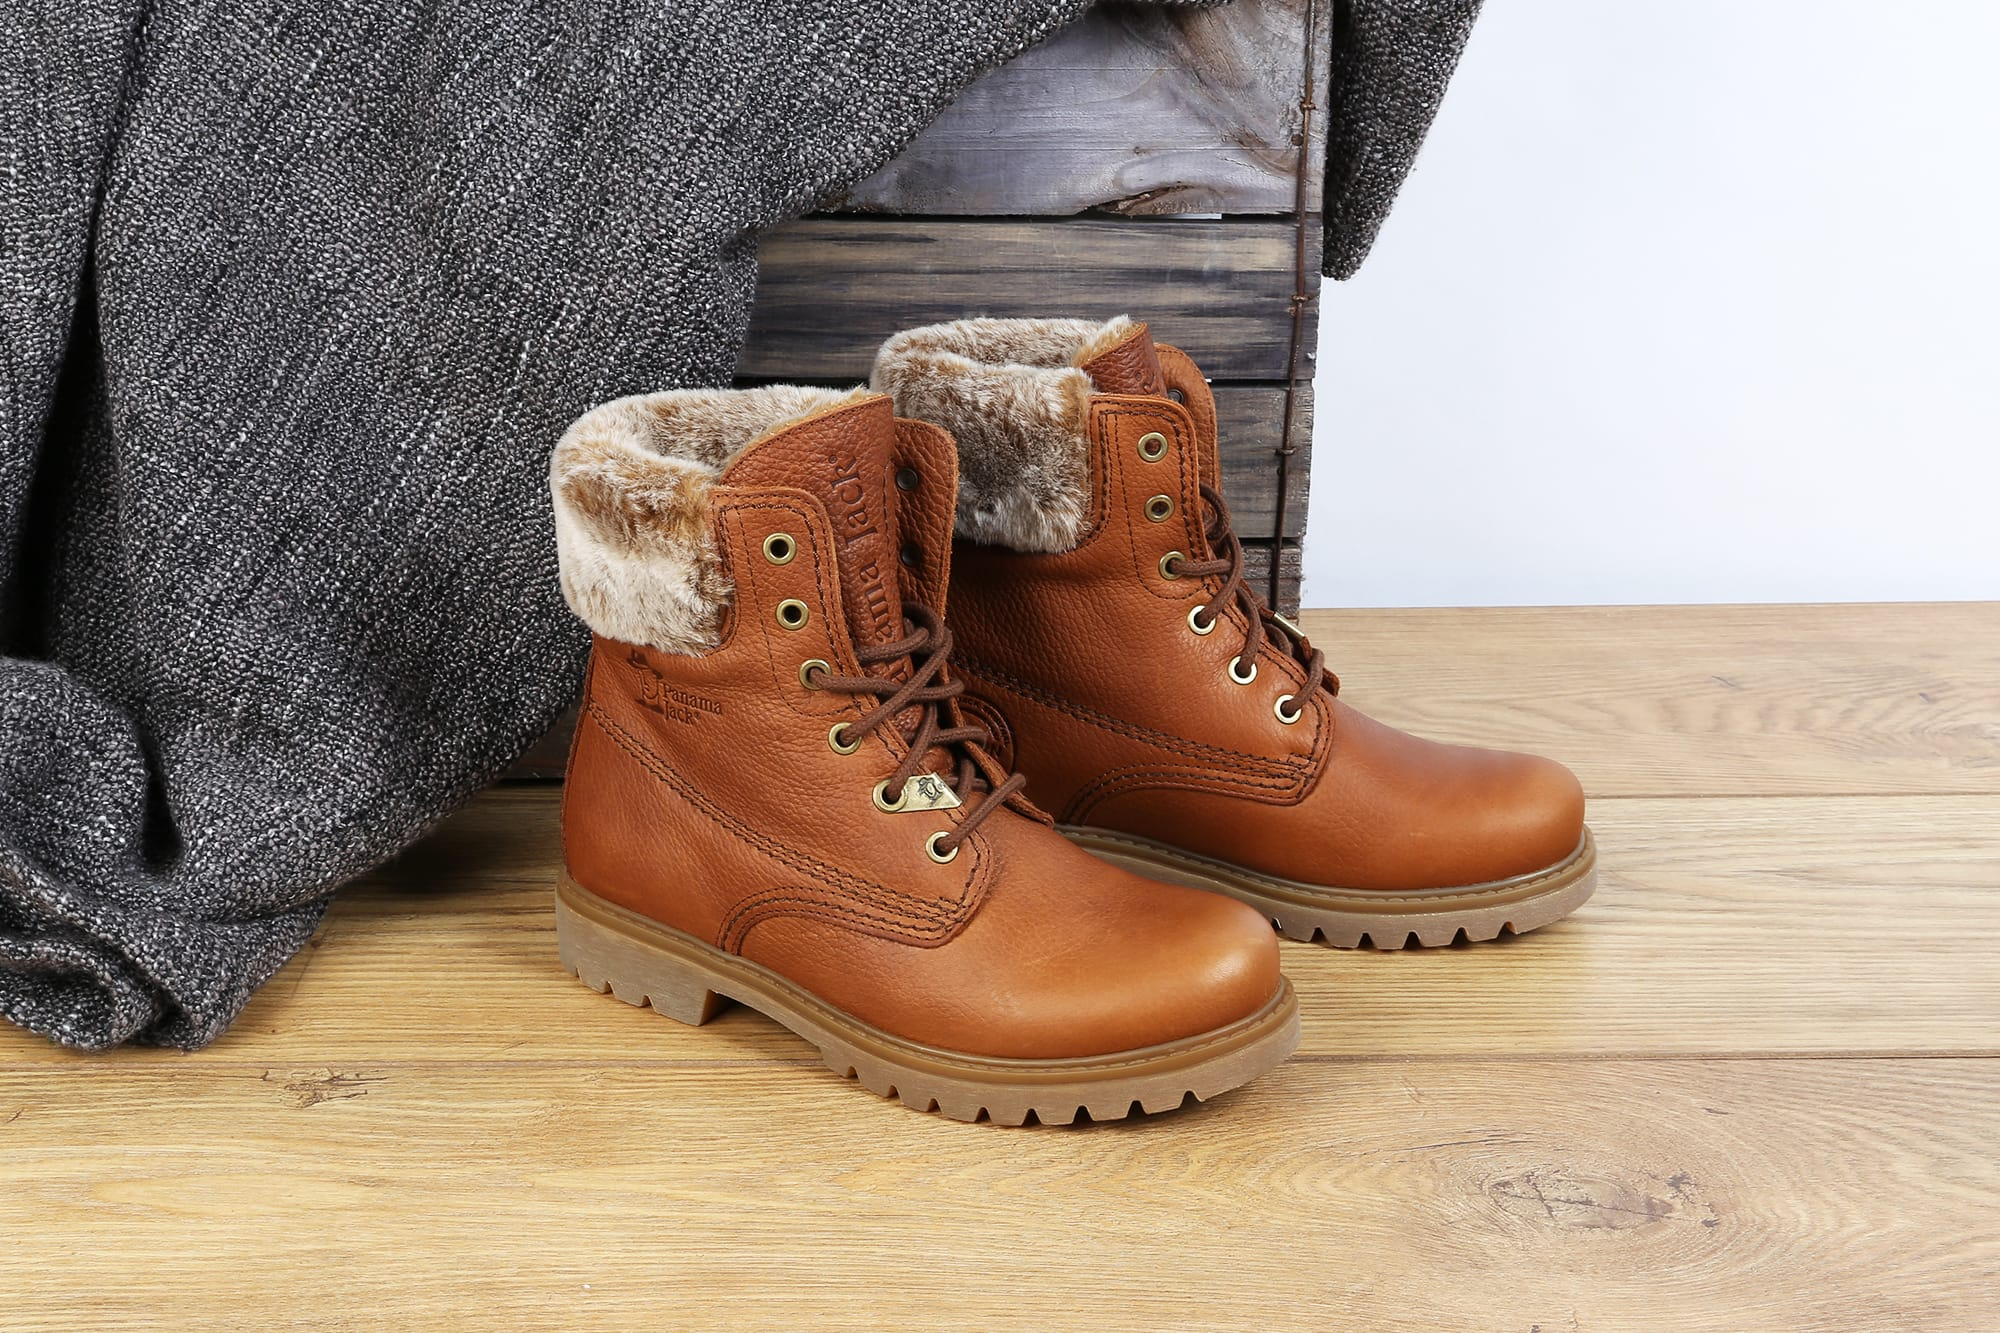 Warmlined Winter Boots